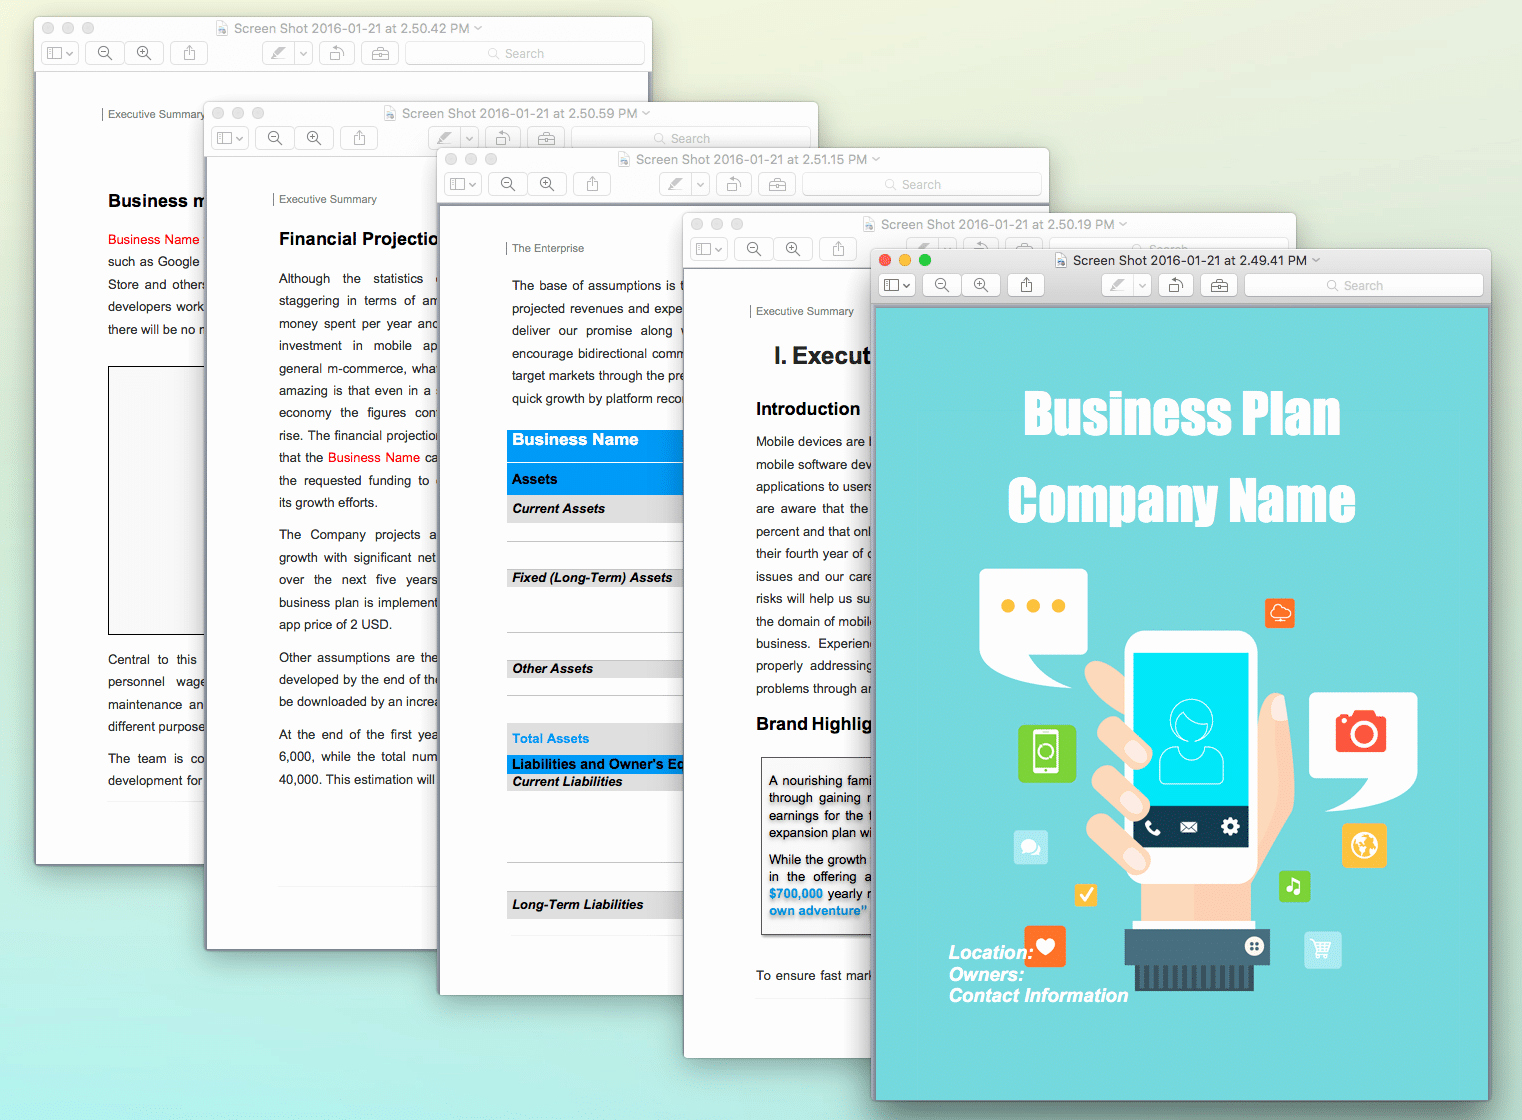 App Business Plan Template Luxury Mobile App Pany Business Plan Sample Pages Black Box